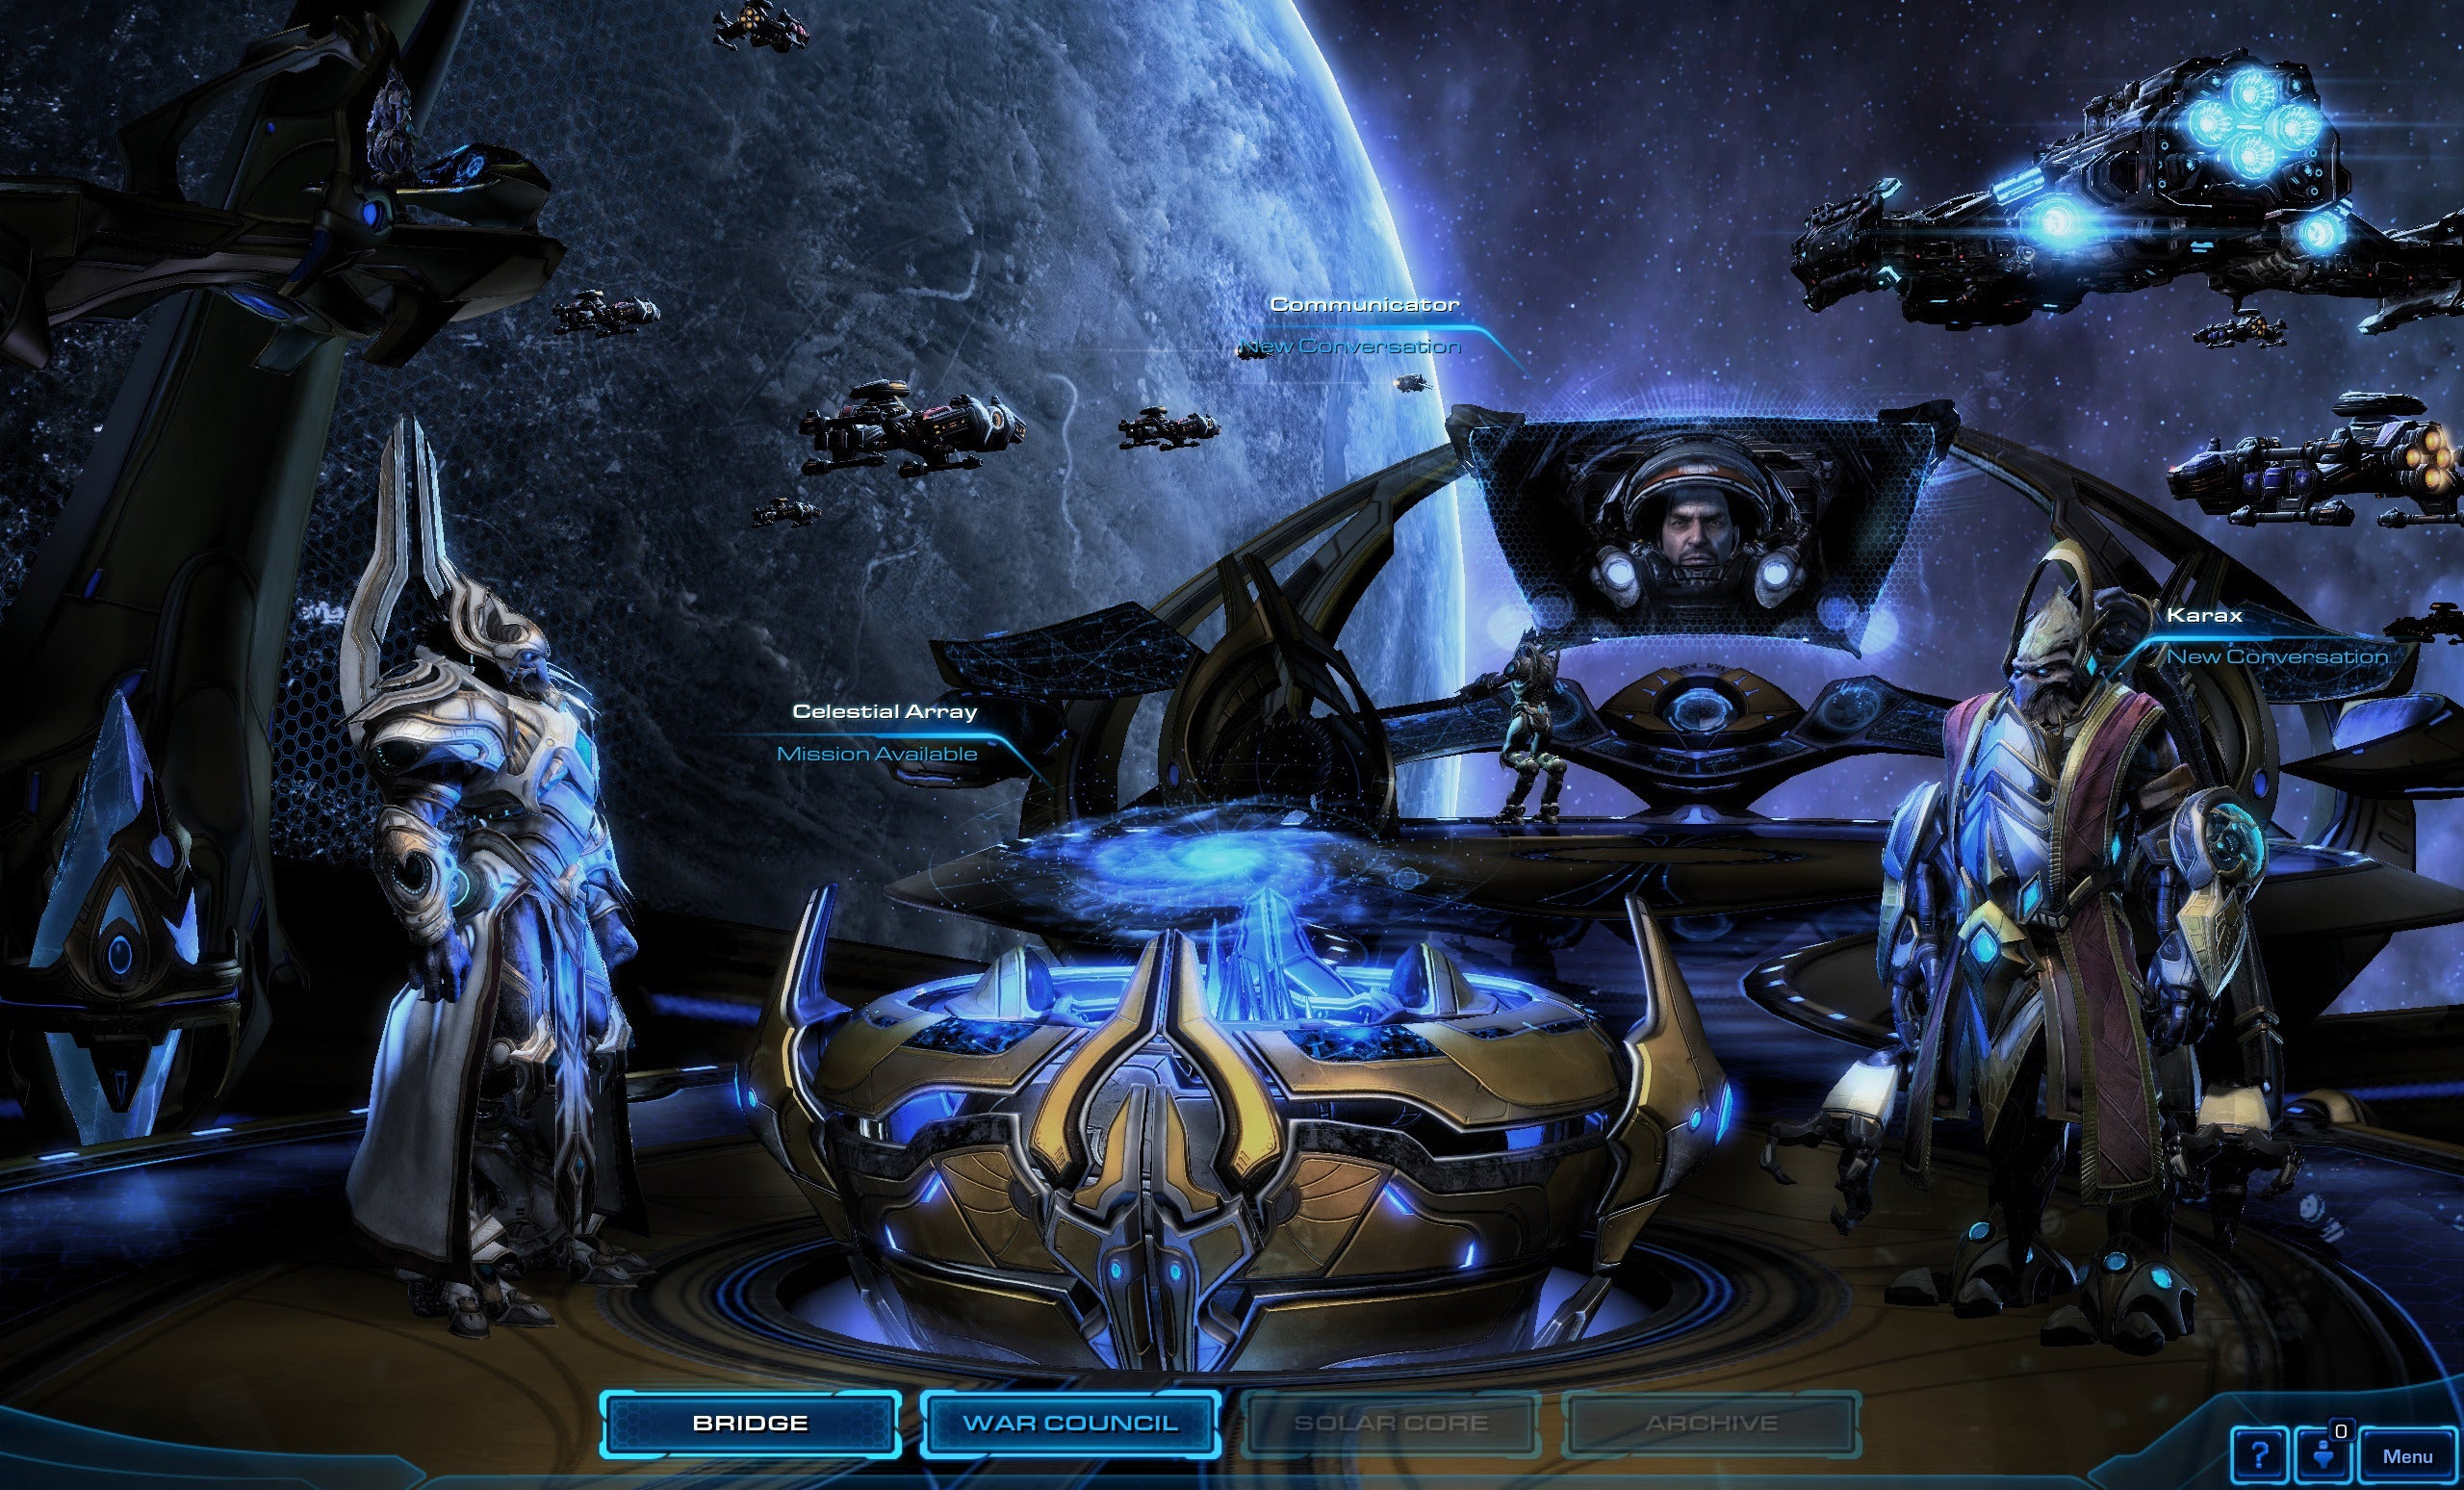 StarCraft II: Legacy of the Void hands-on: End of the world (as we know it) | PCWorld